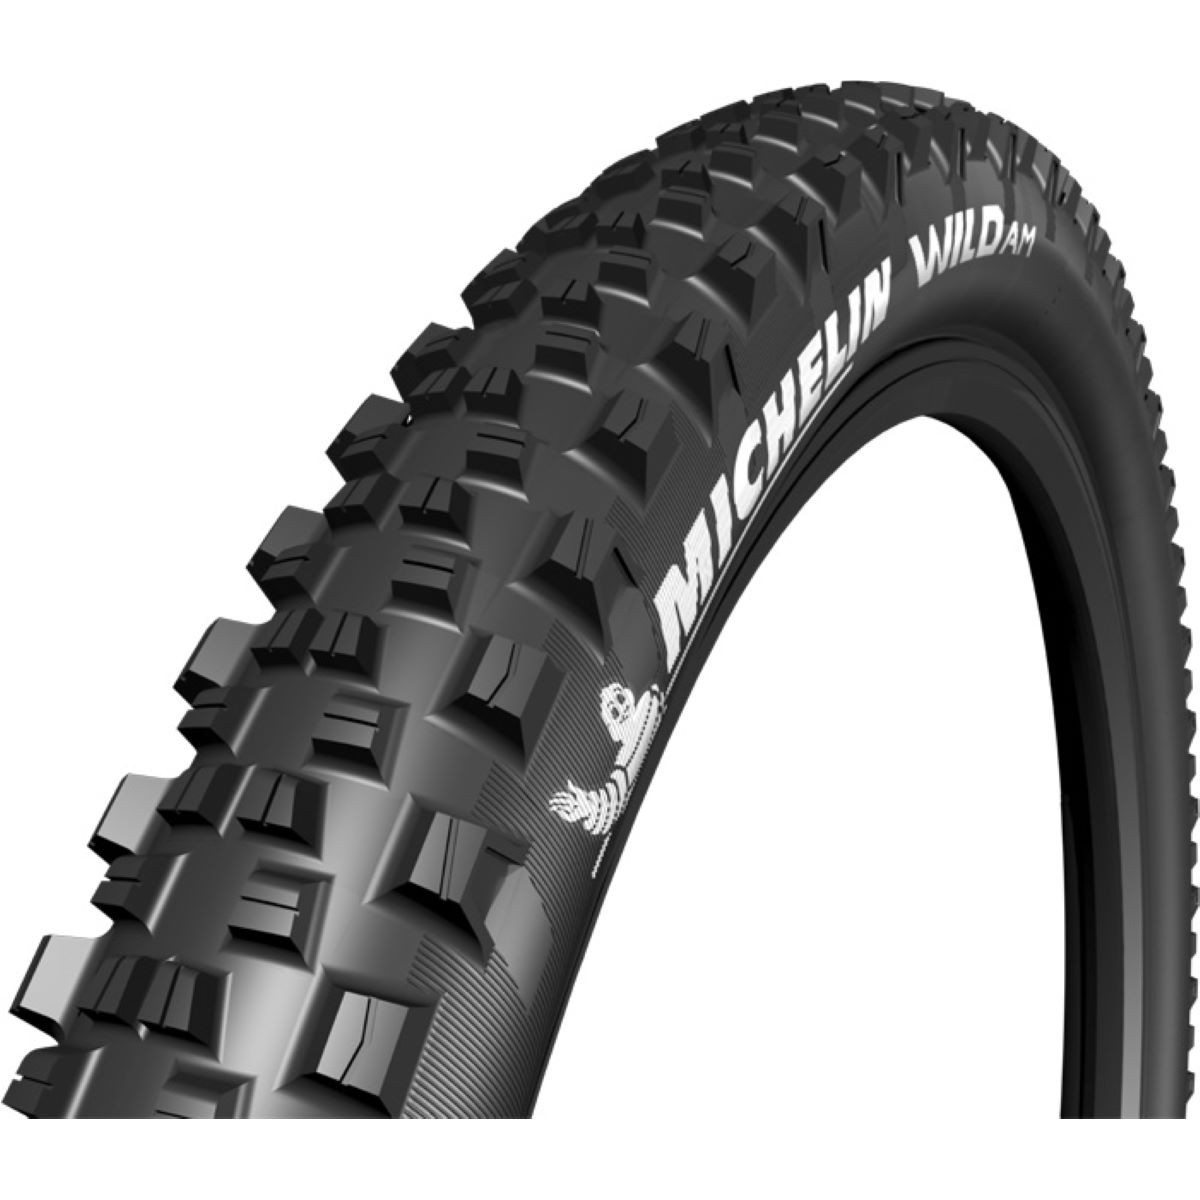 Pneu VTT Michelin Wild AM Performance TLR - 2.8' 27.5' Noir Pneus